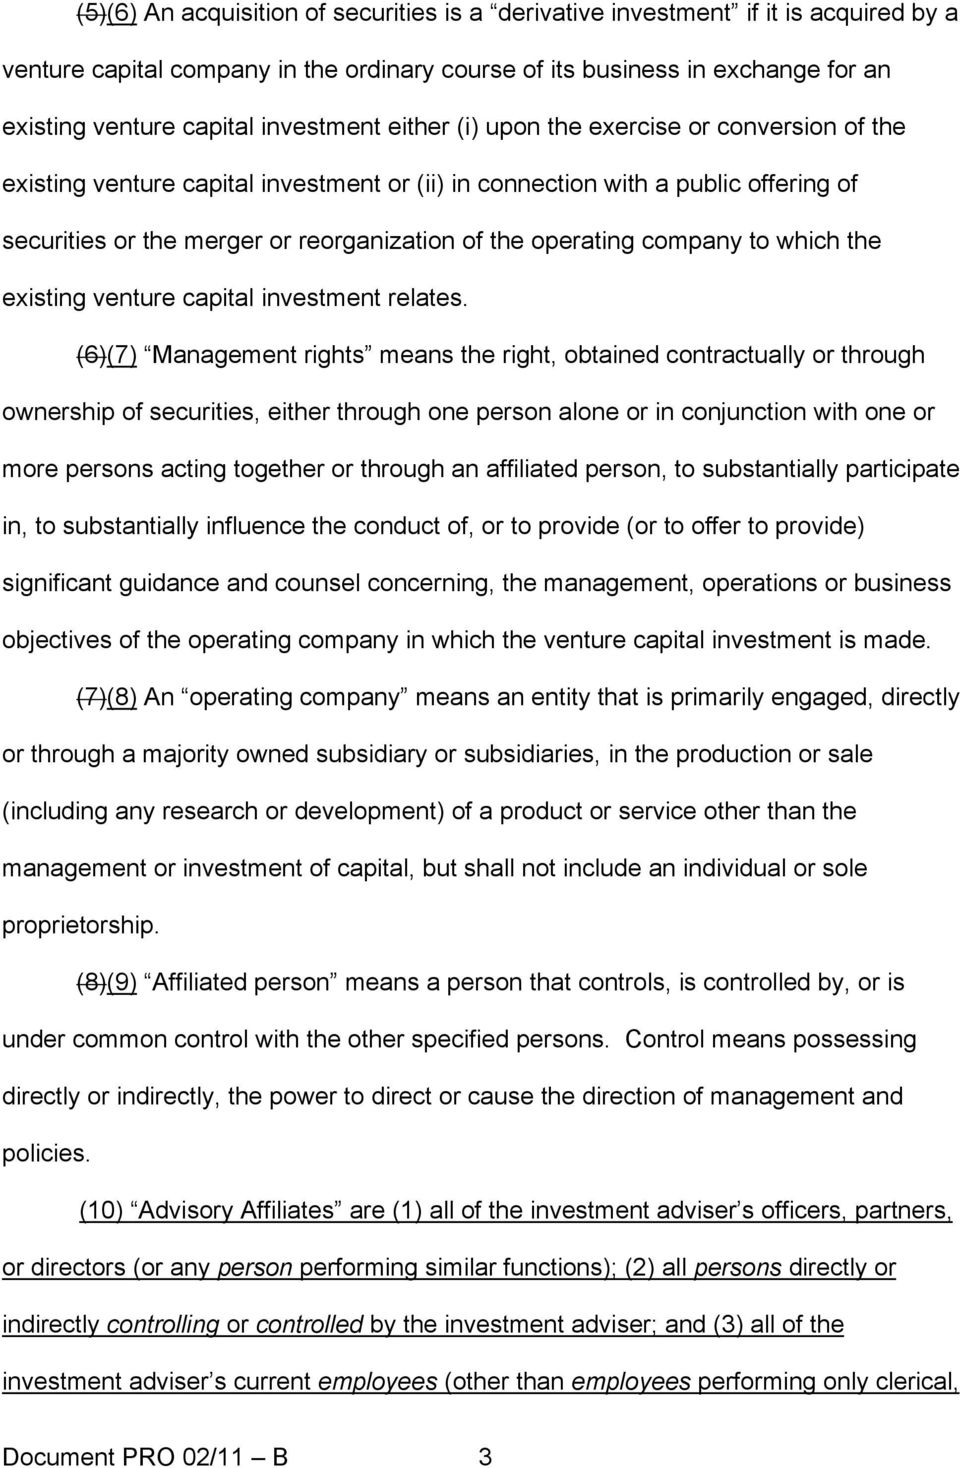 operating company to which the existing venture capital investment relates.